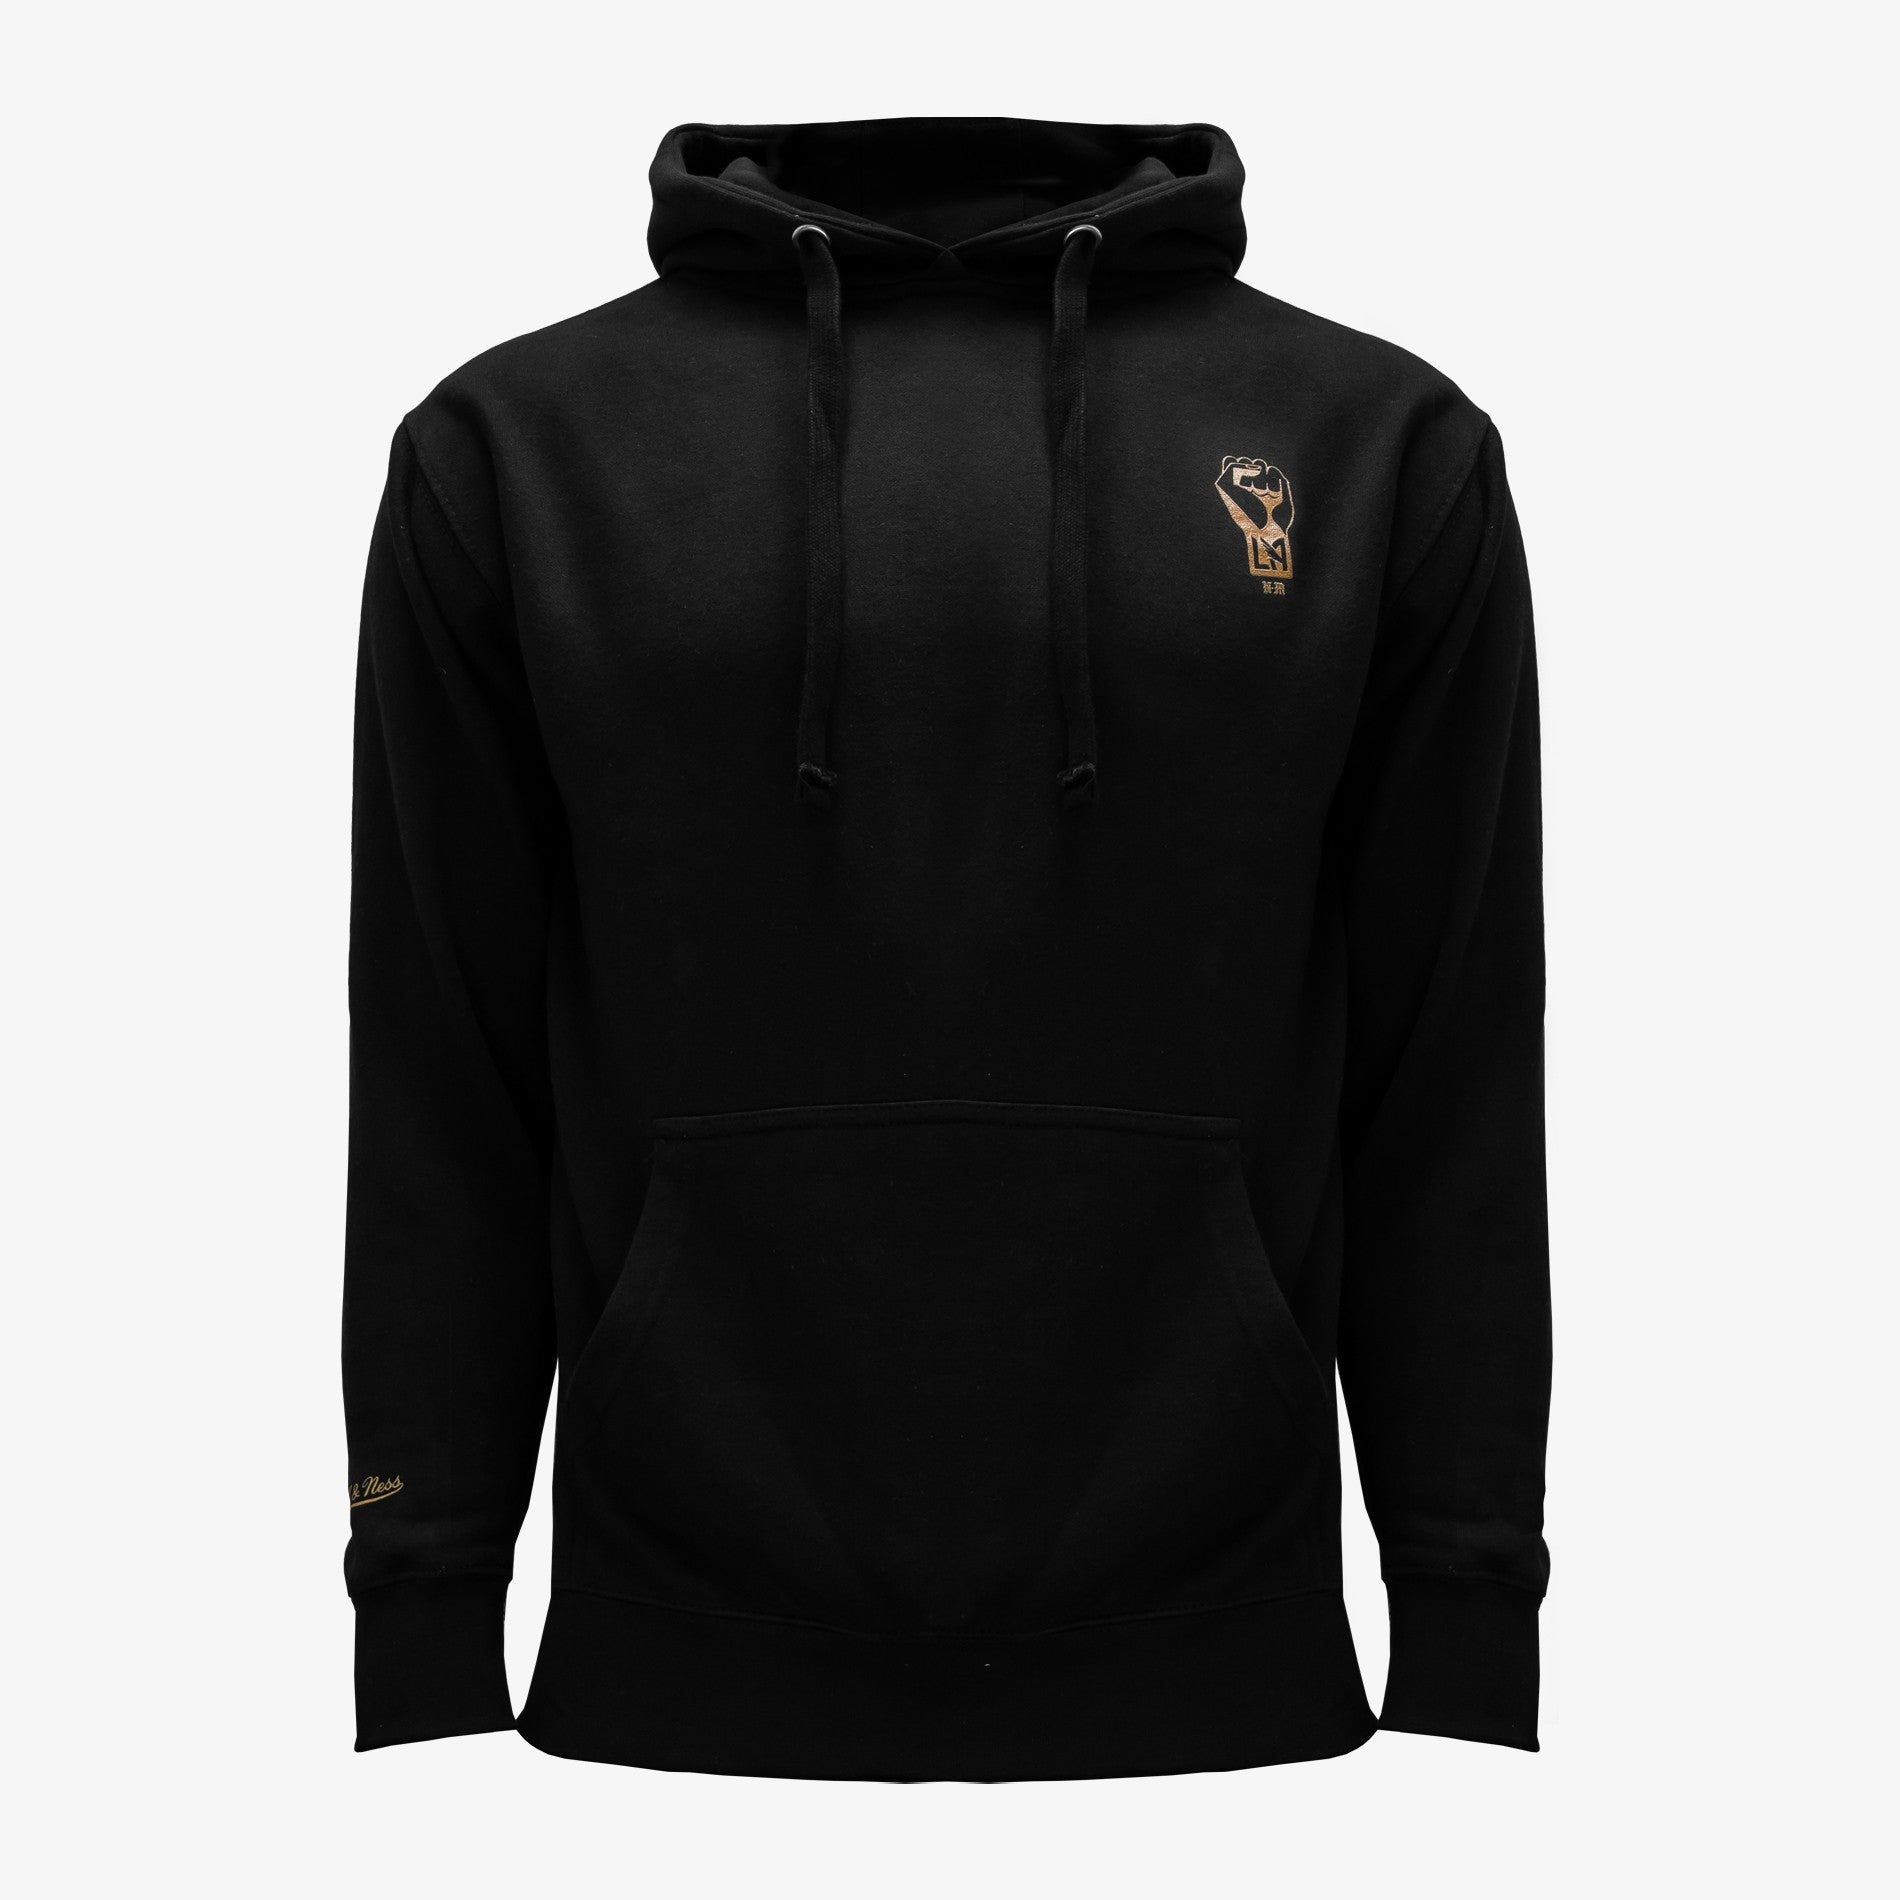 LAFC x Never Made Chain Hoodie - Black/Gold